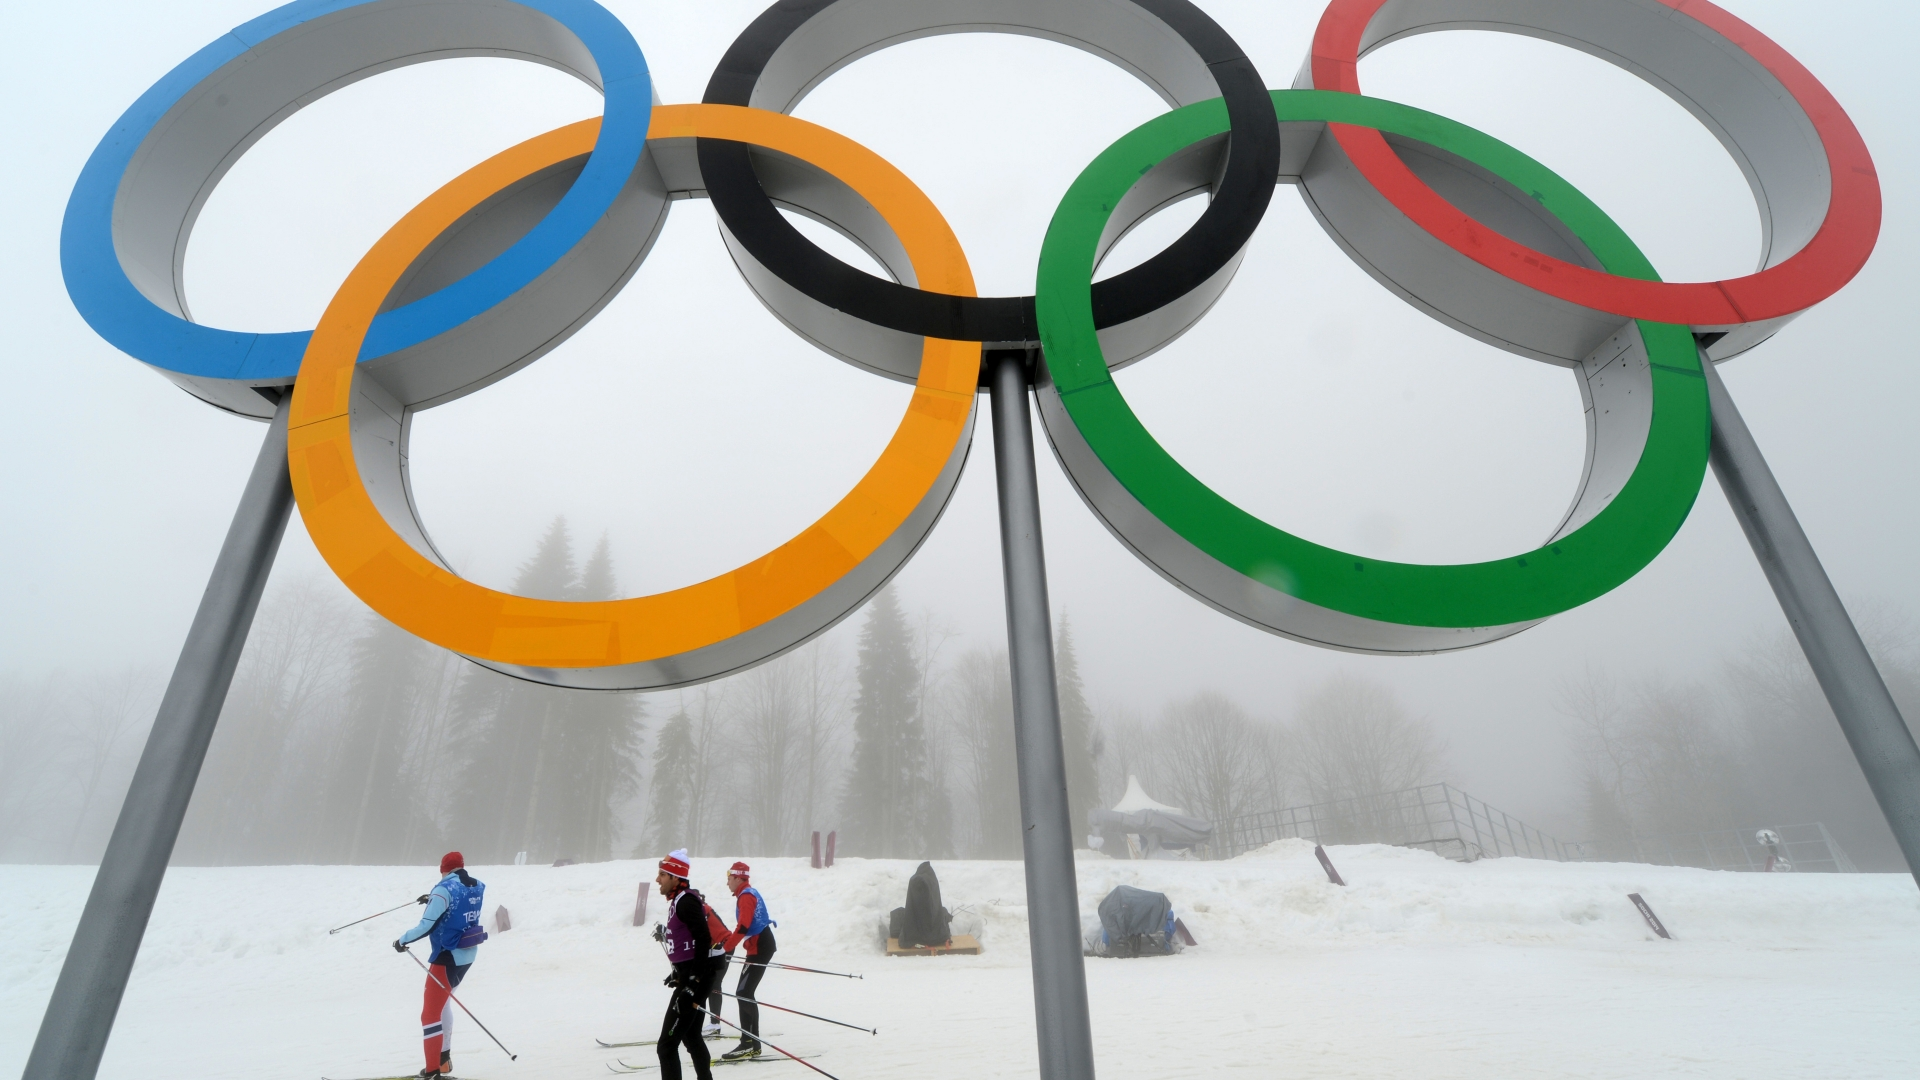 Olympic Rings for 1920 x 1080 HDTV 1080p resolution